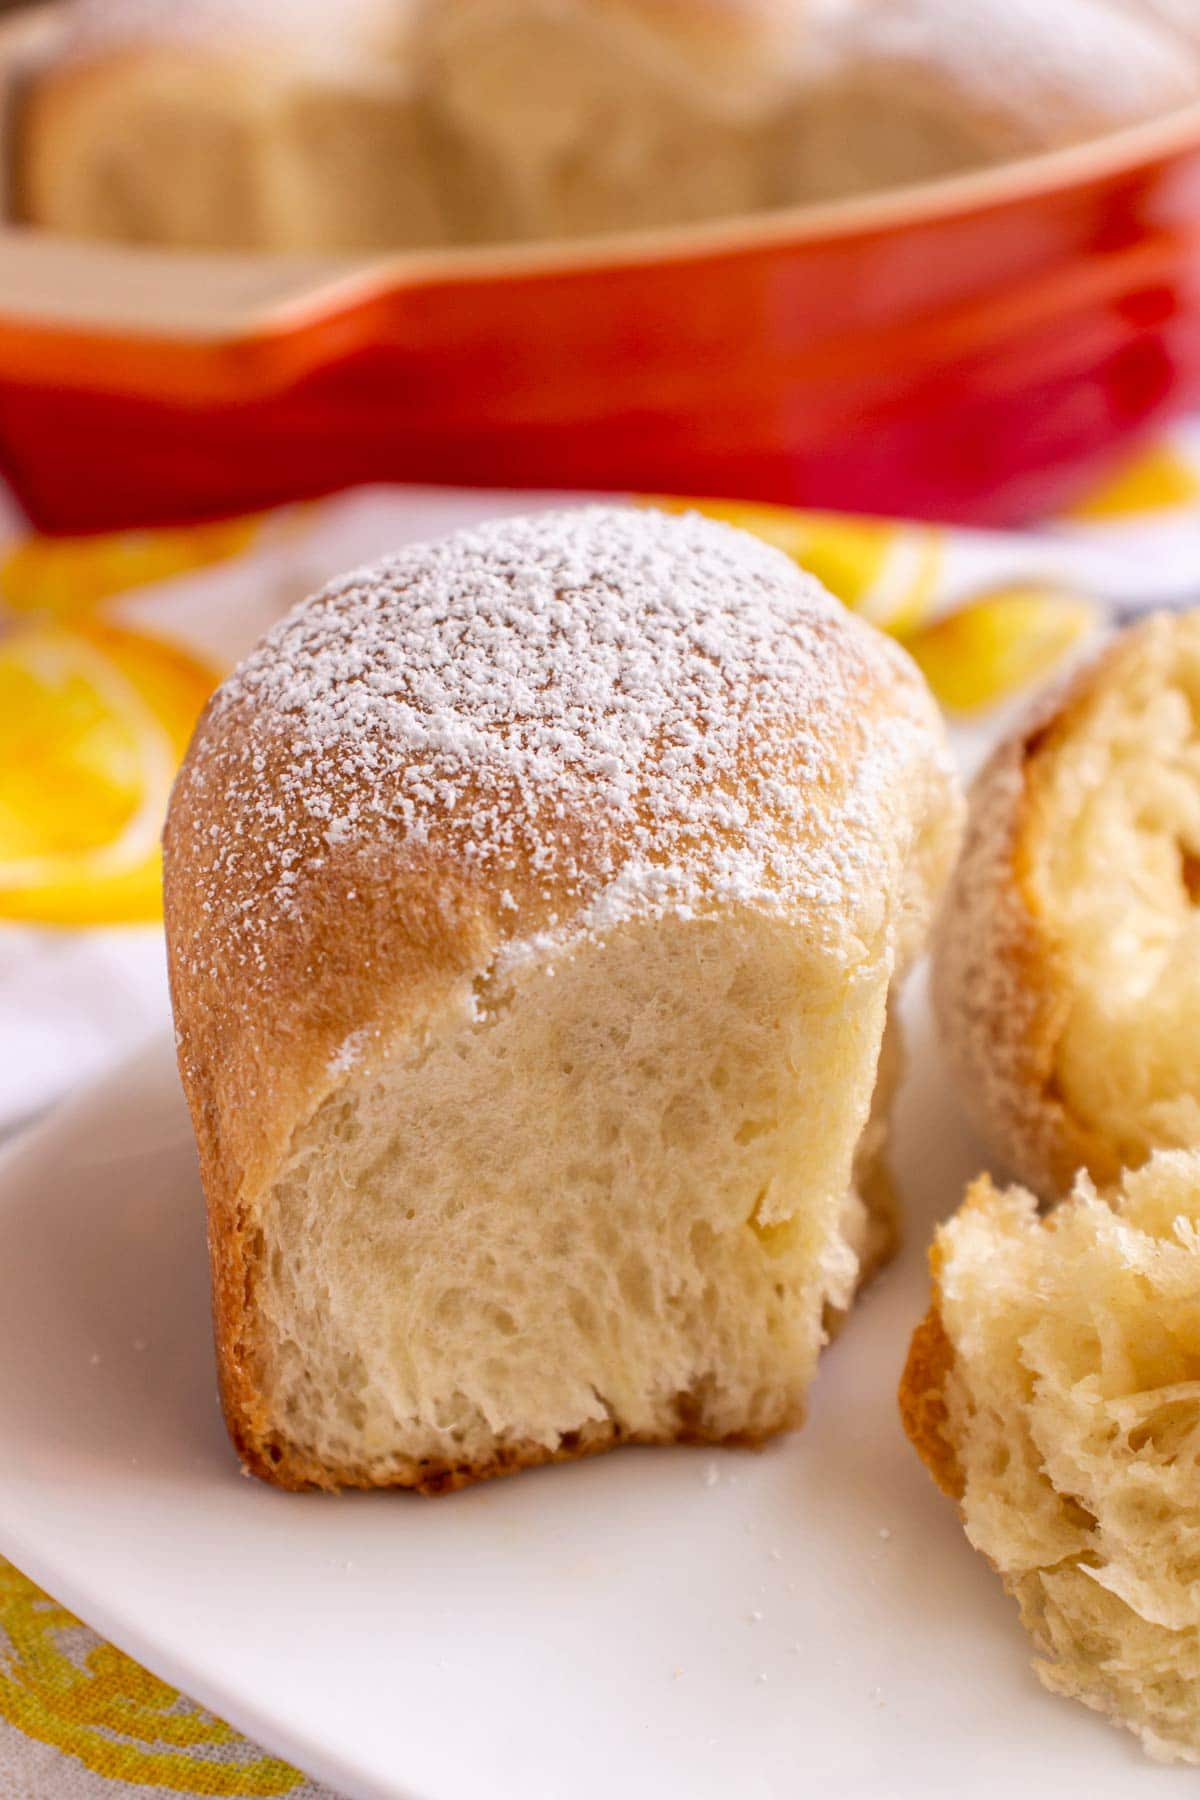 Closeup of an Austrian sweet roll topped with powdered sugar on a white plate.